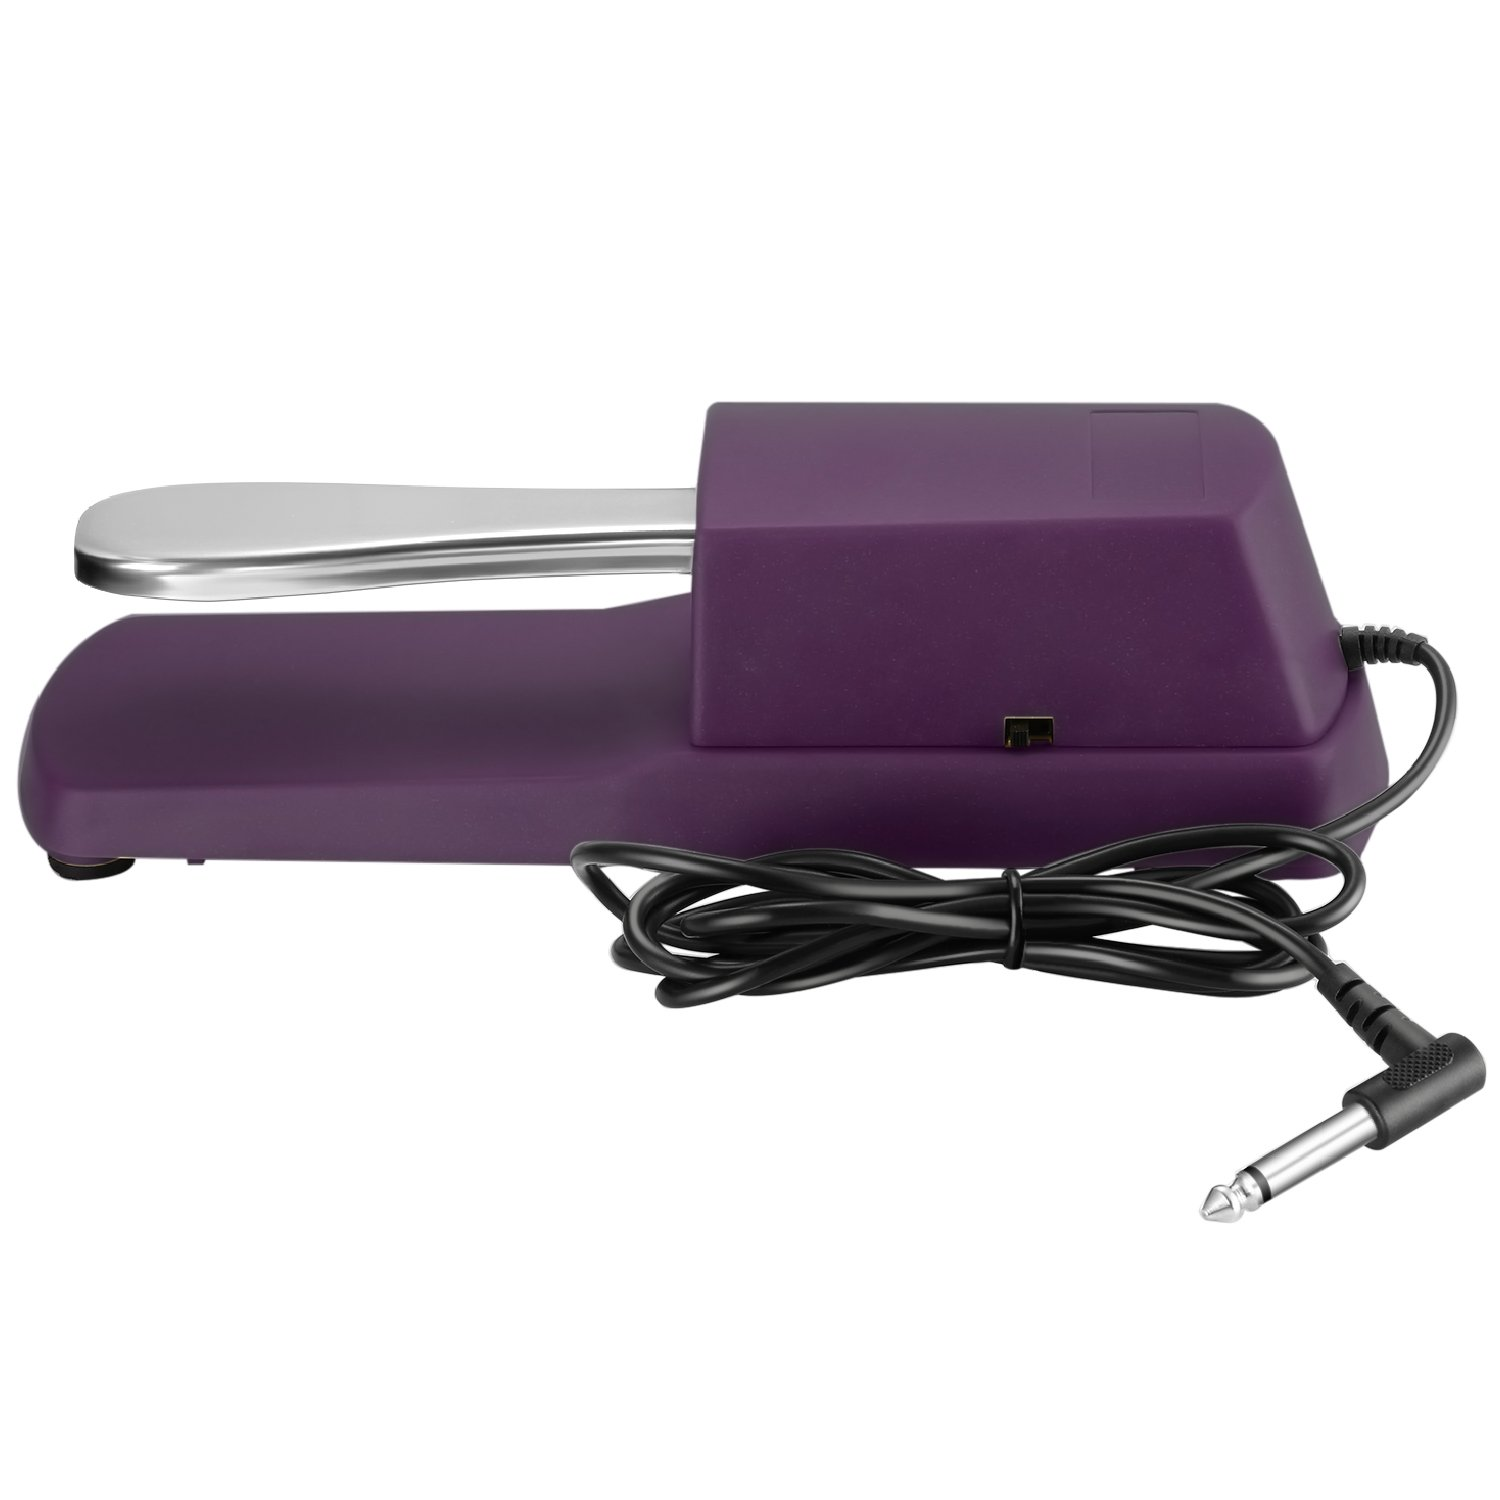 Neewer Universal Musical Sustain Foot Pedal with Polarity Switch Design, Compatible with Any Electronic Keyboard Piano with 1/4-inch Plug (Purple)